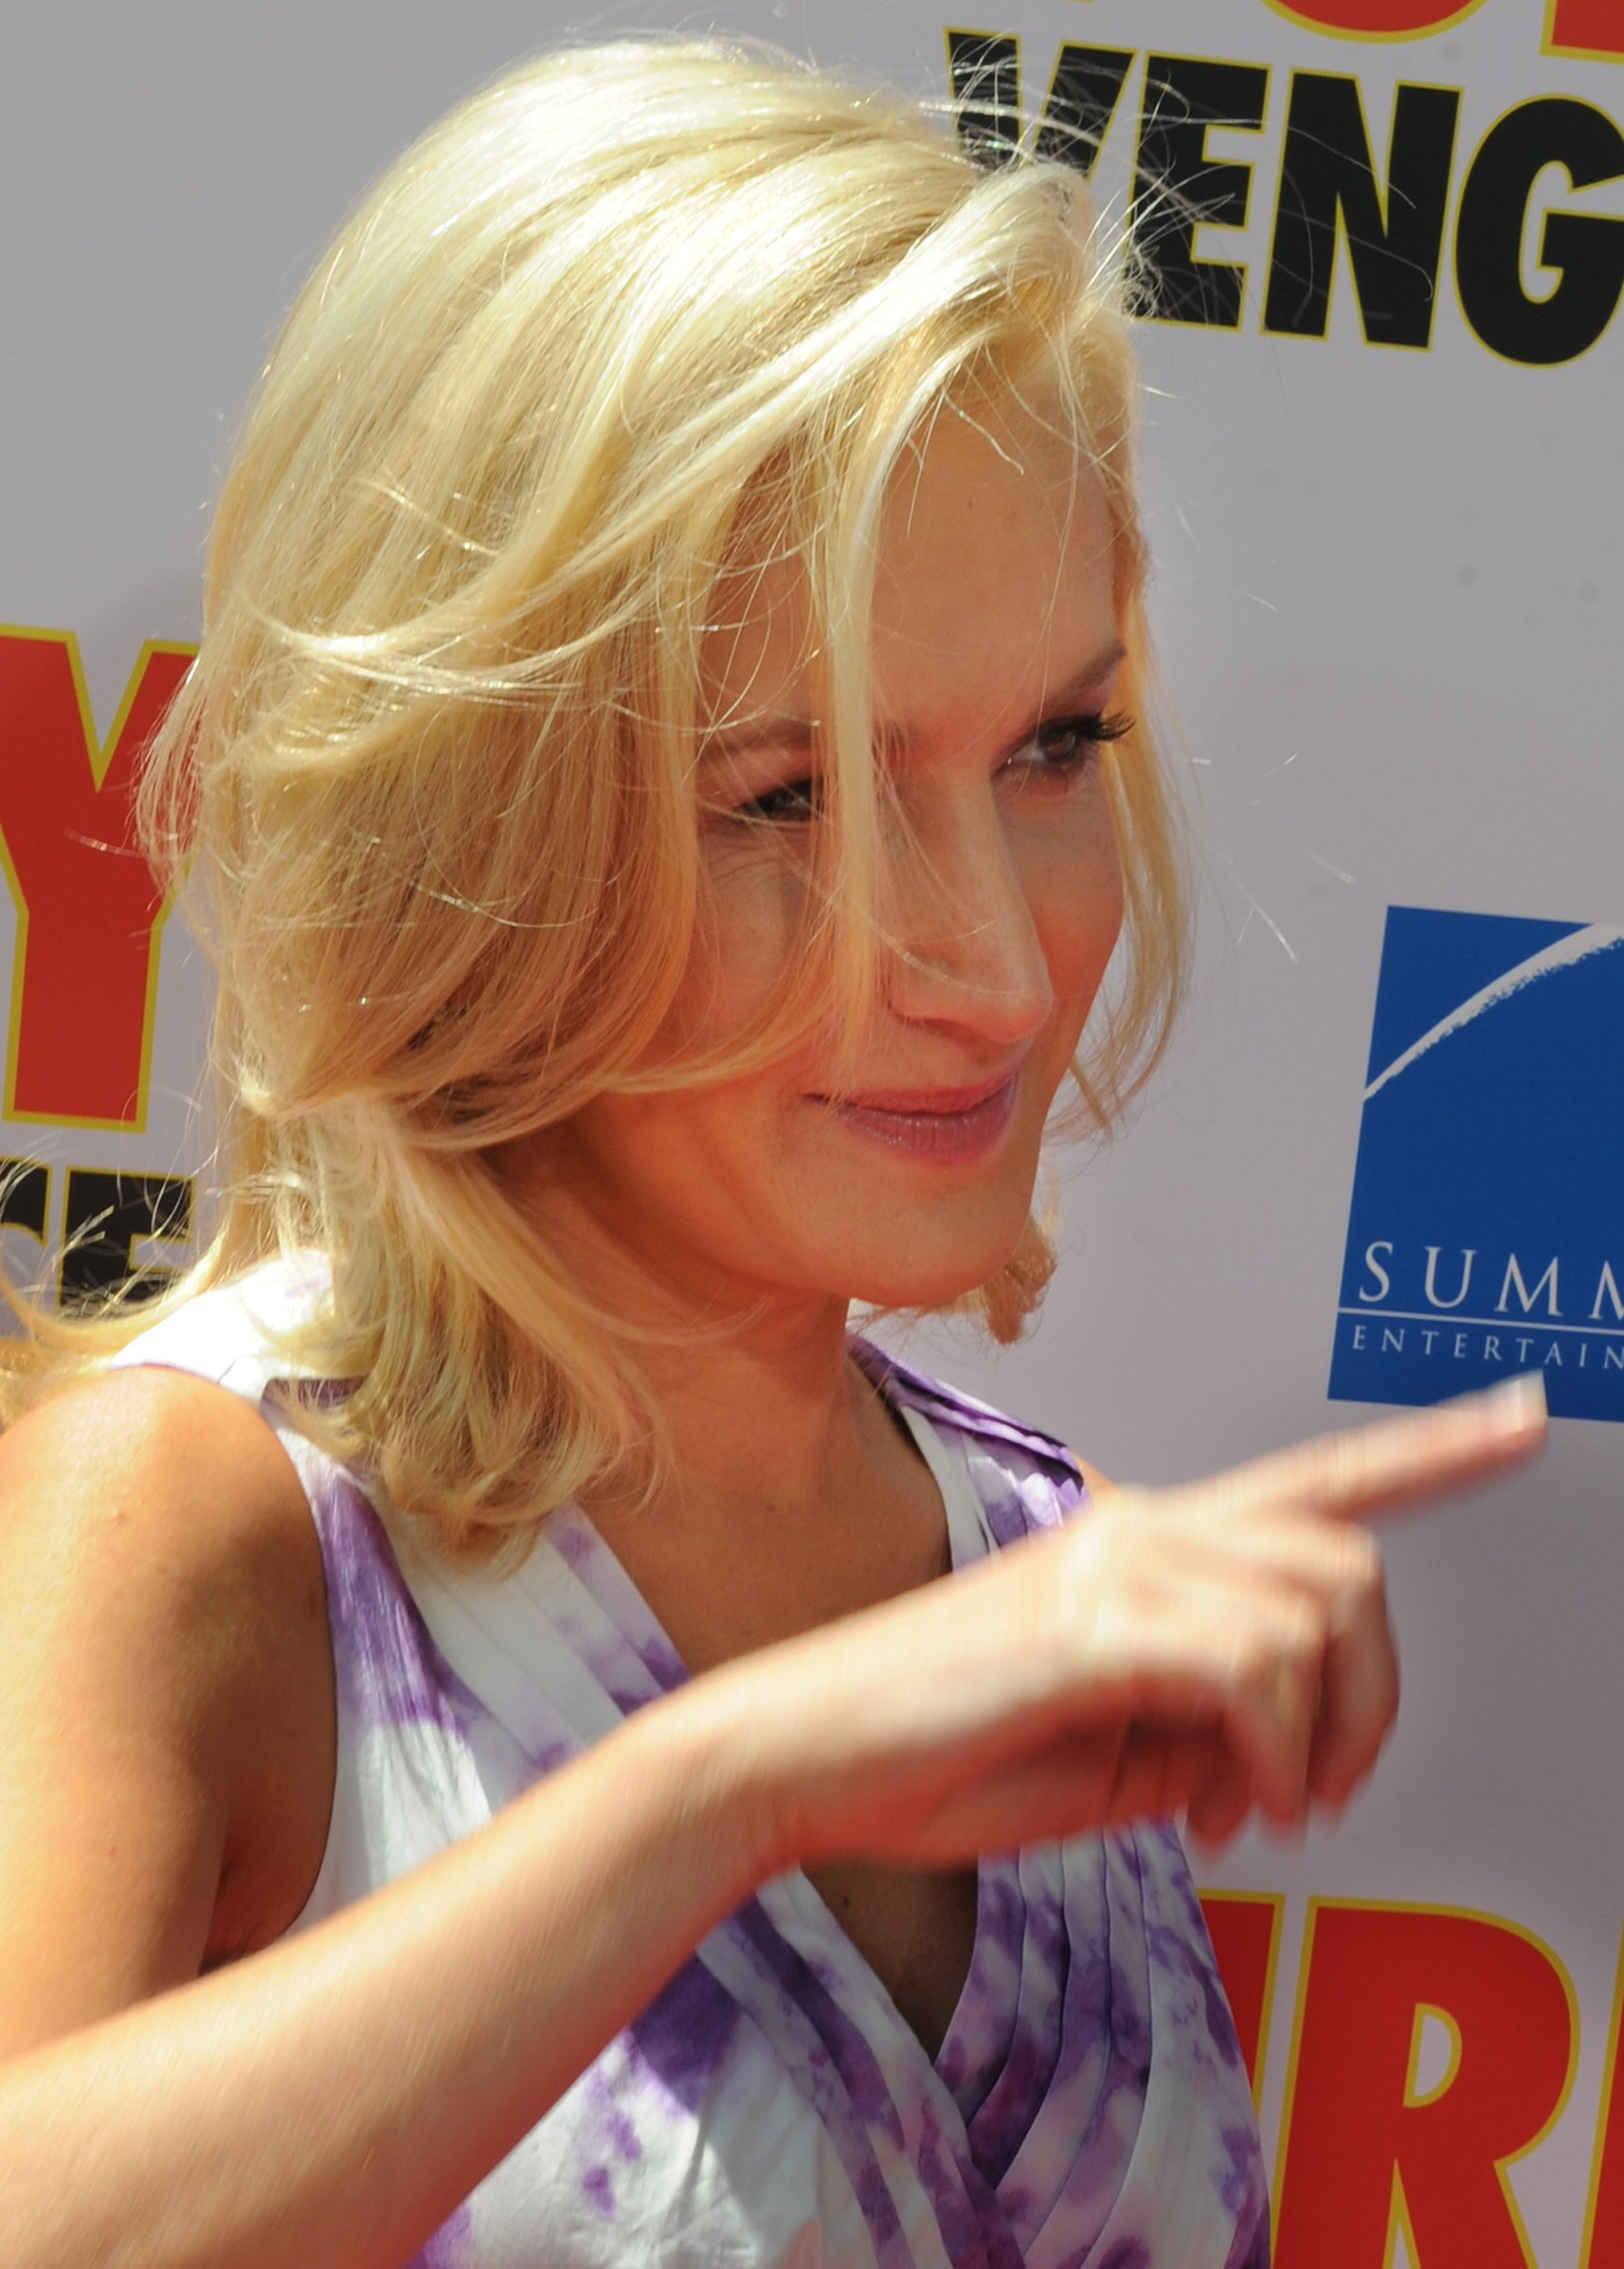 Angela Kinsey attending the Furry Vengeance premiere on April 18, 2010